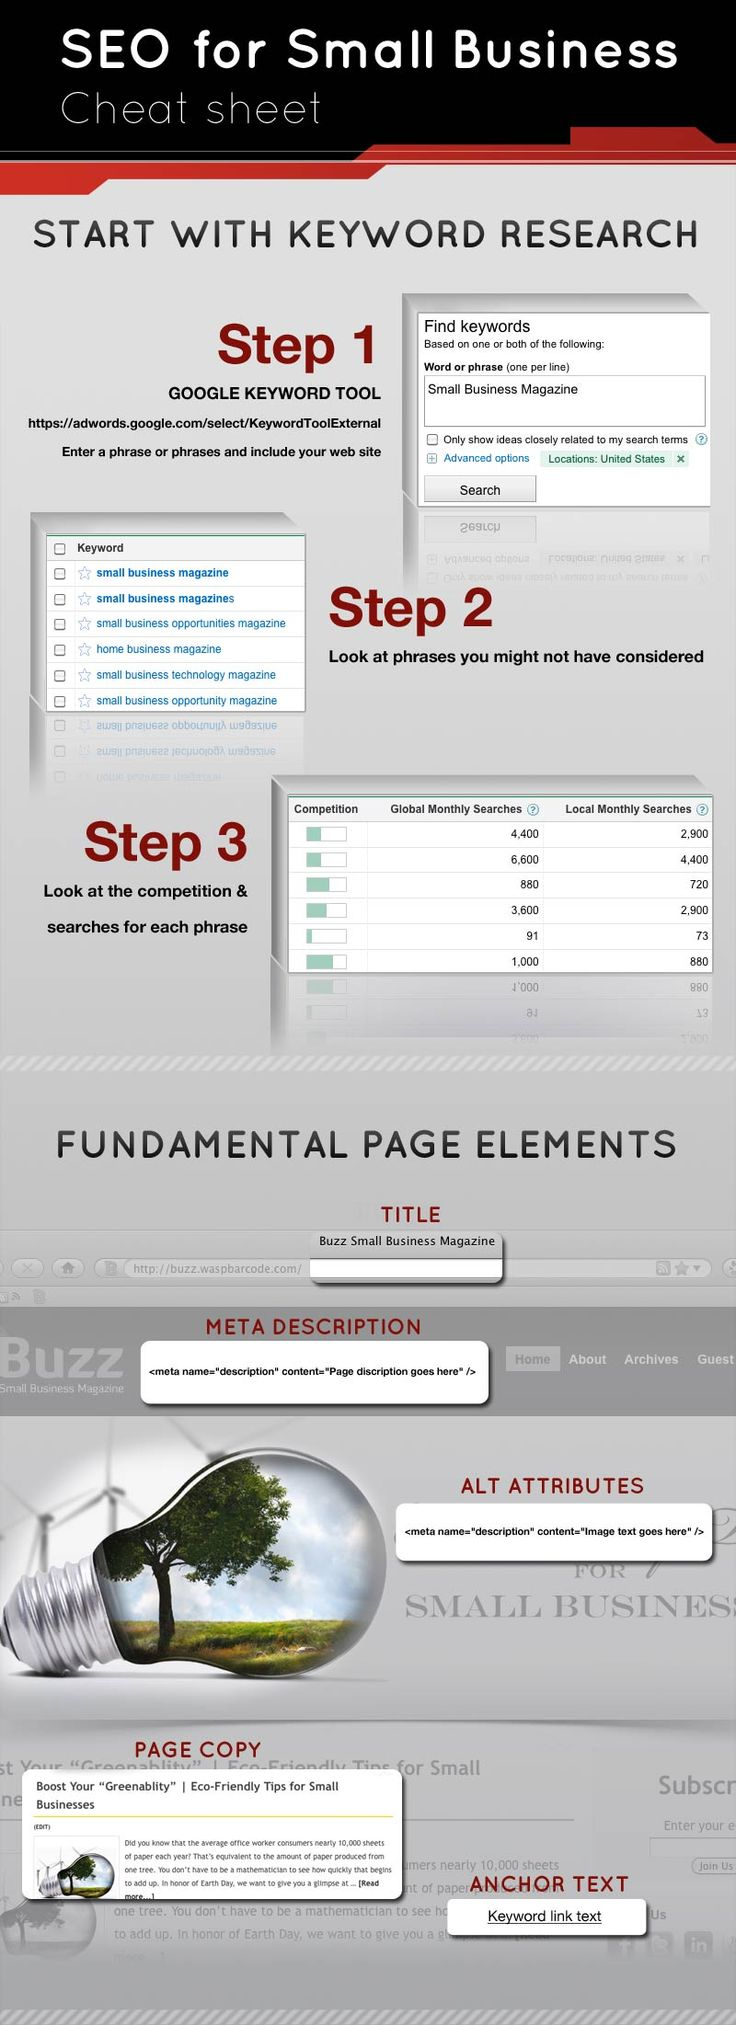 SEO for Small Business Cheat Sheet